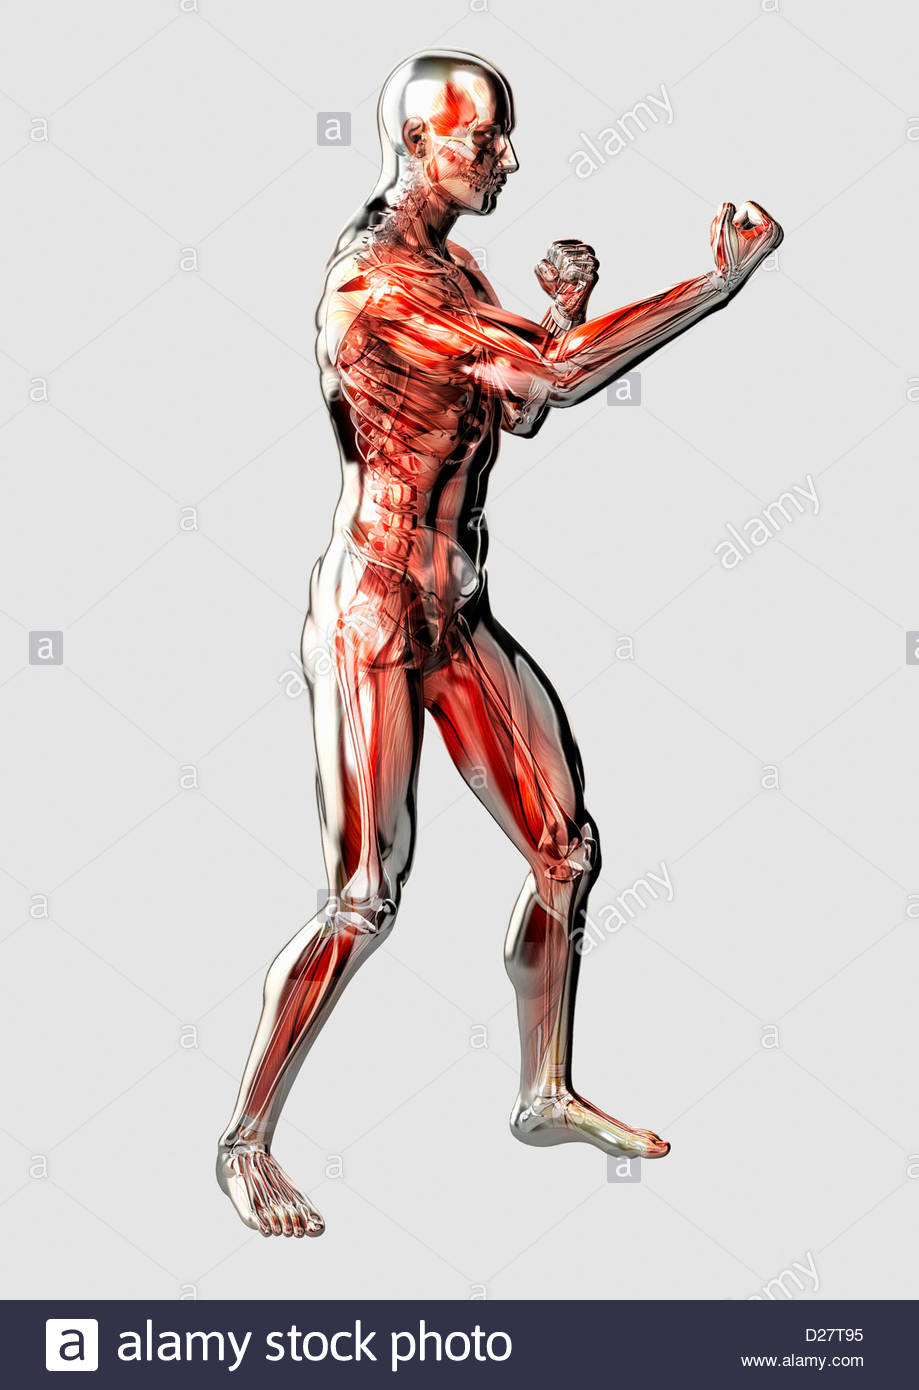 Male anatomical model in fighting stance on white background - Stock Image